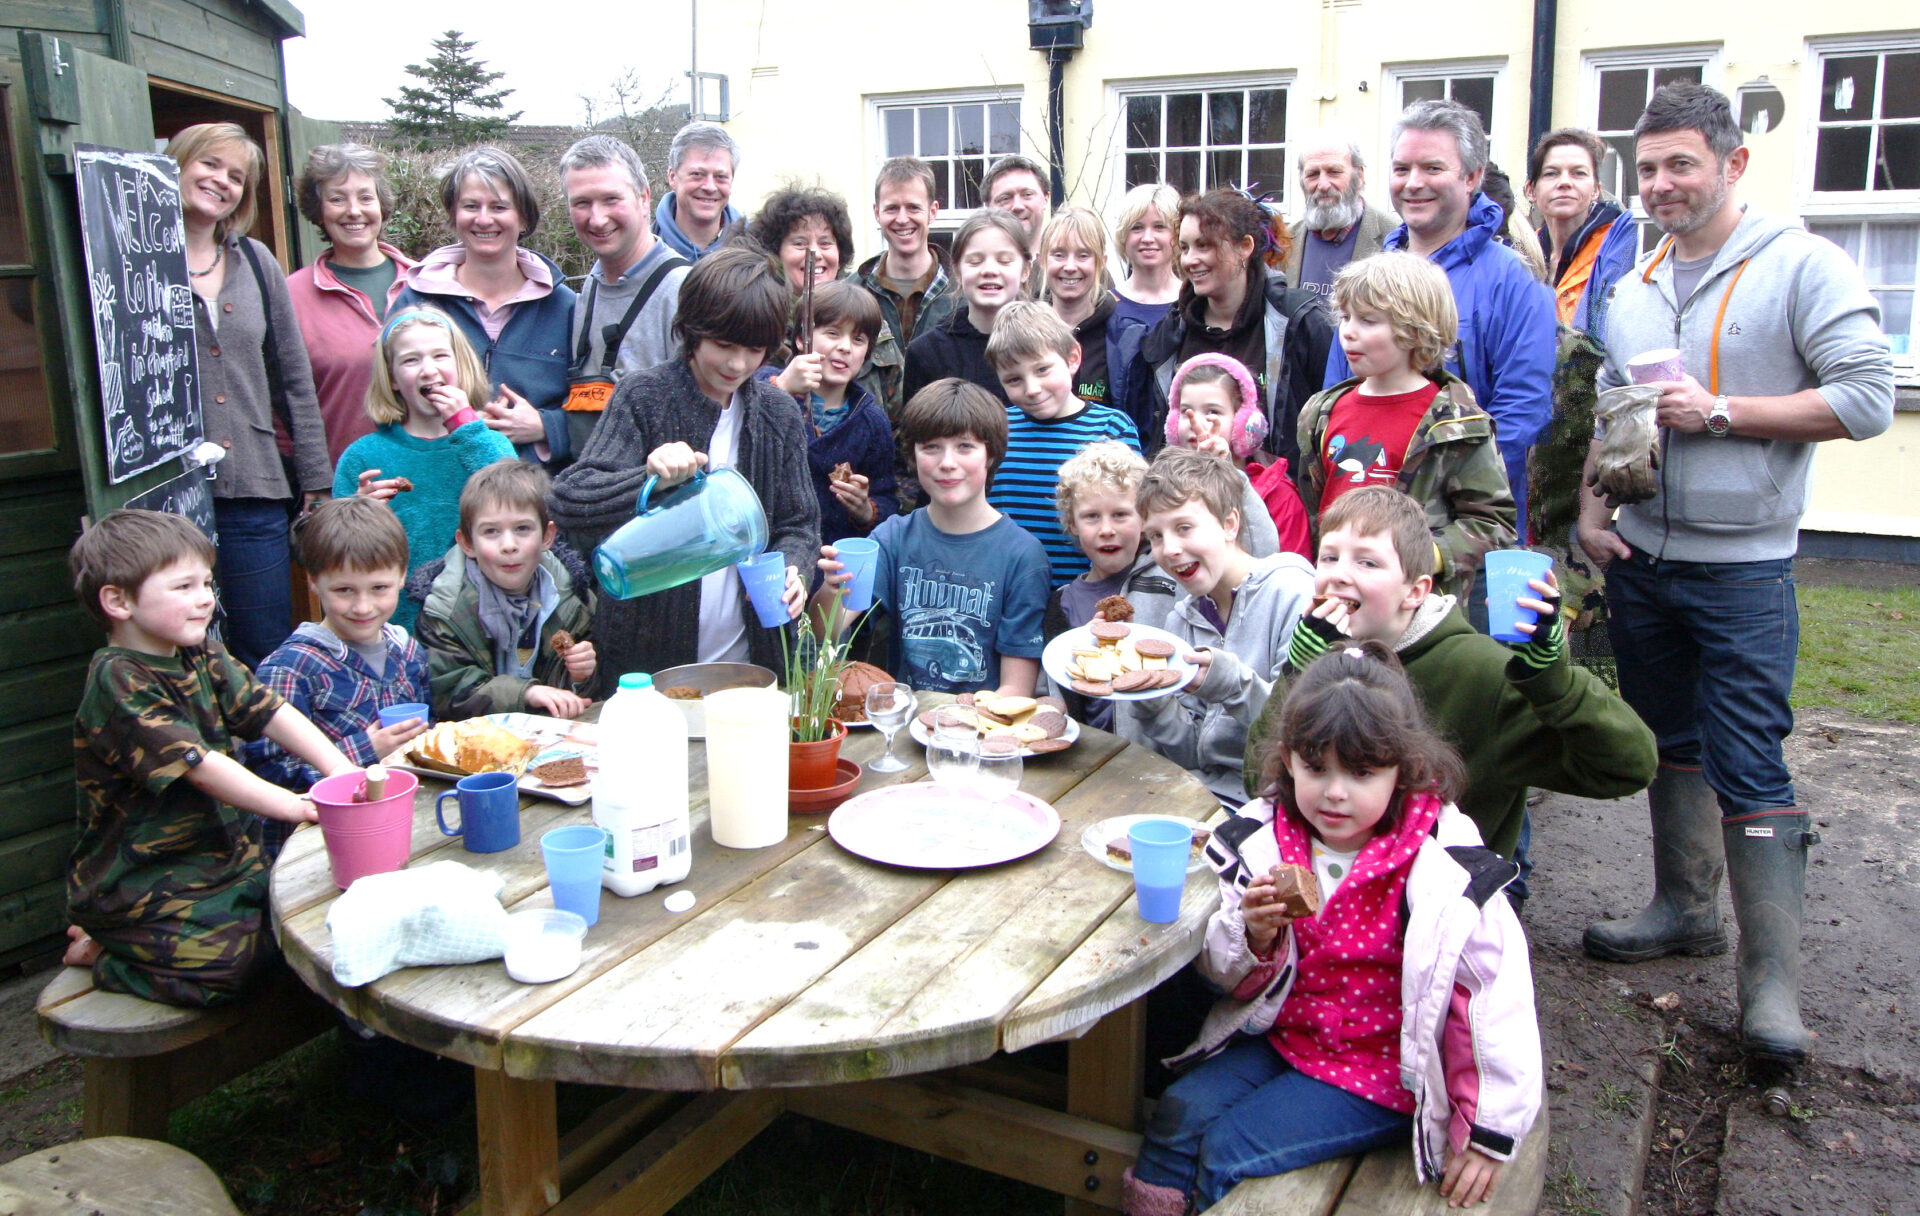 Chagford School tidy up in February 2012. Chilly but everyone was well wrapped up. Even Eric had stout footwear on !